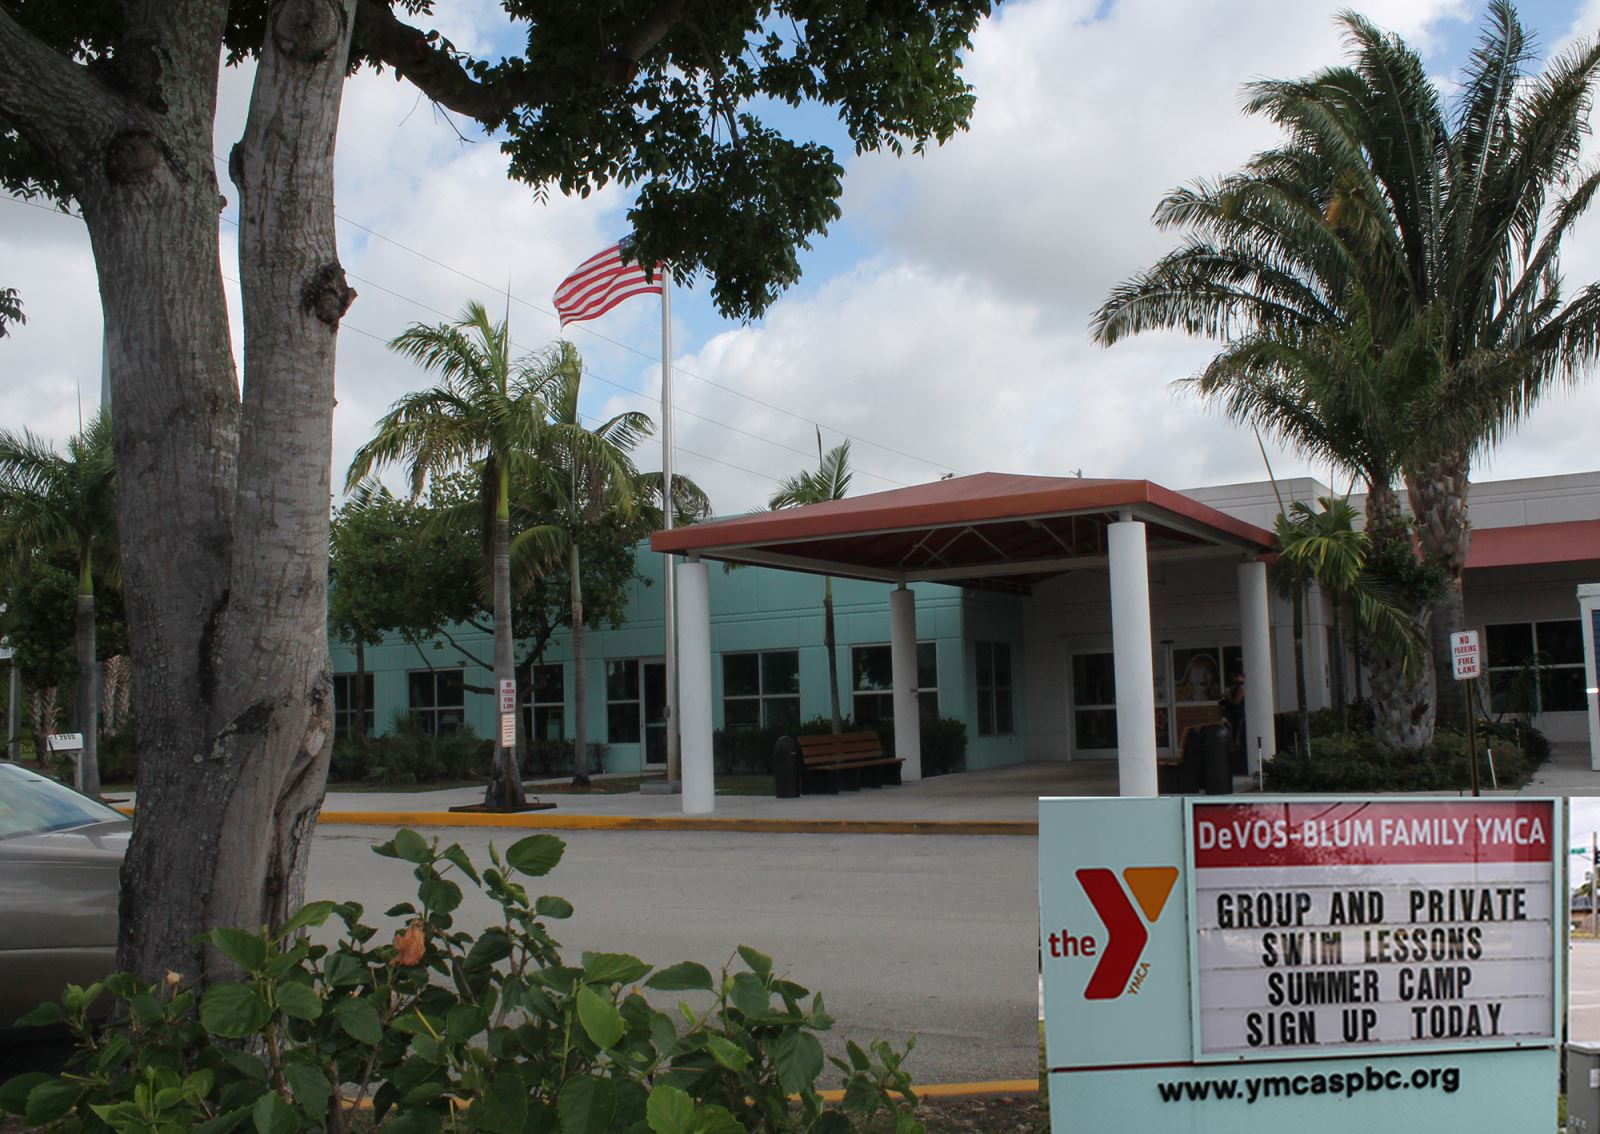 DeVos-Blum Family YMCA of Boynton Beach